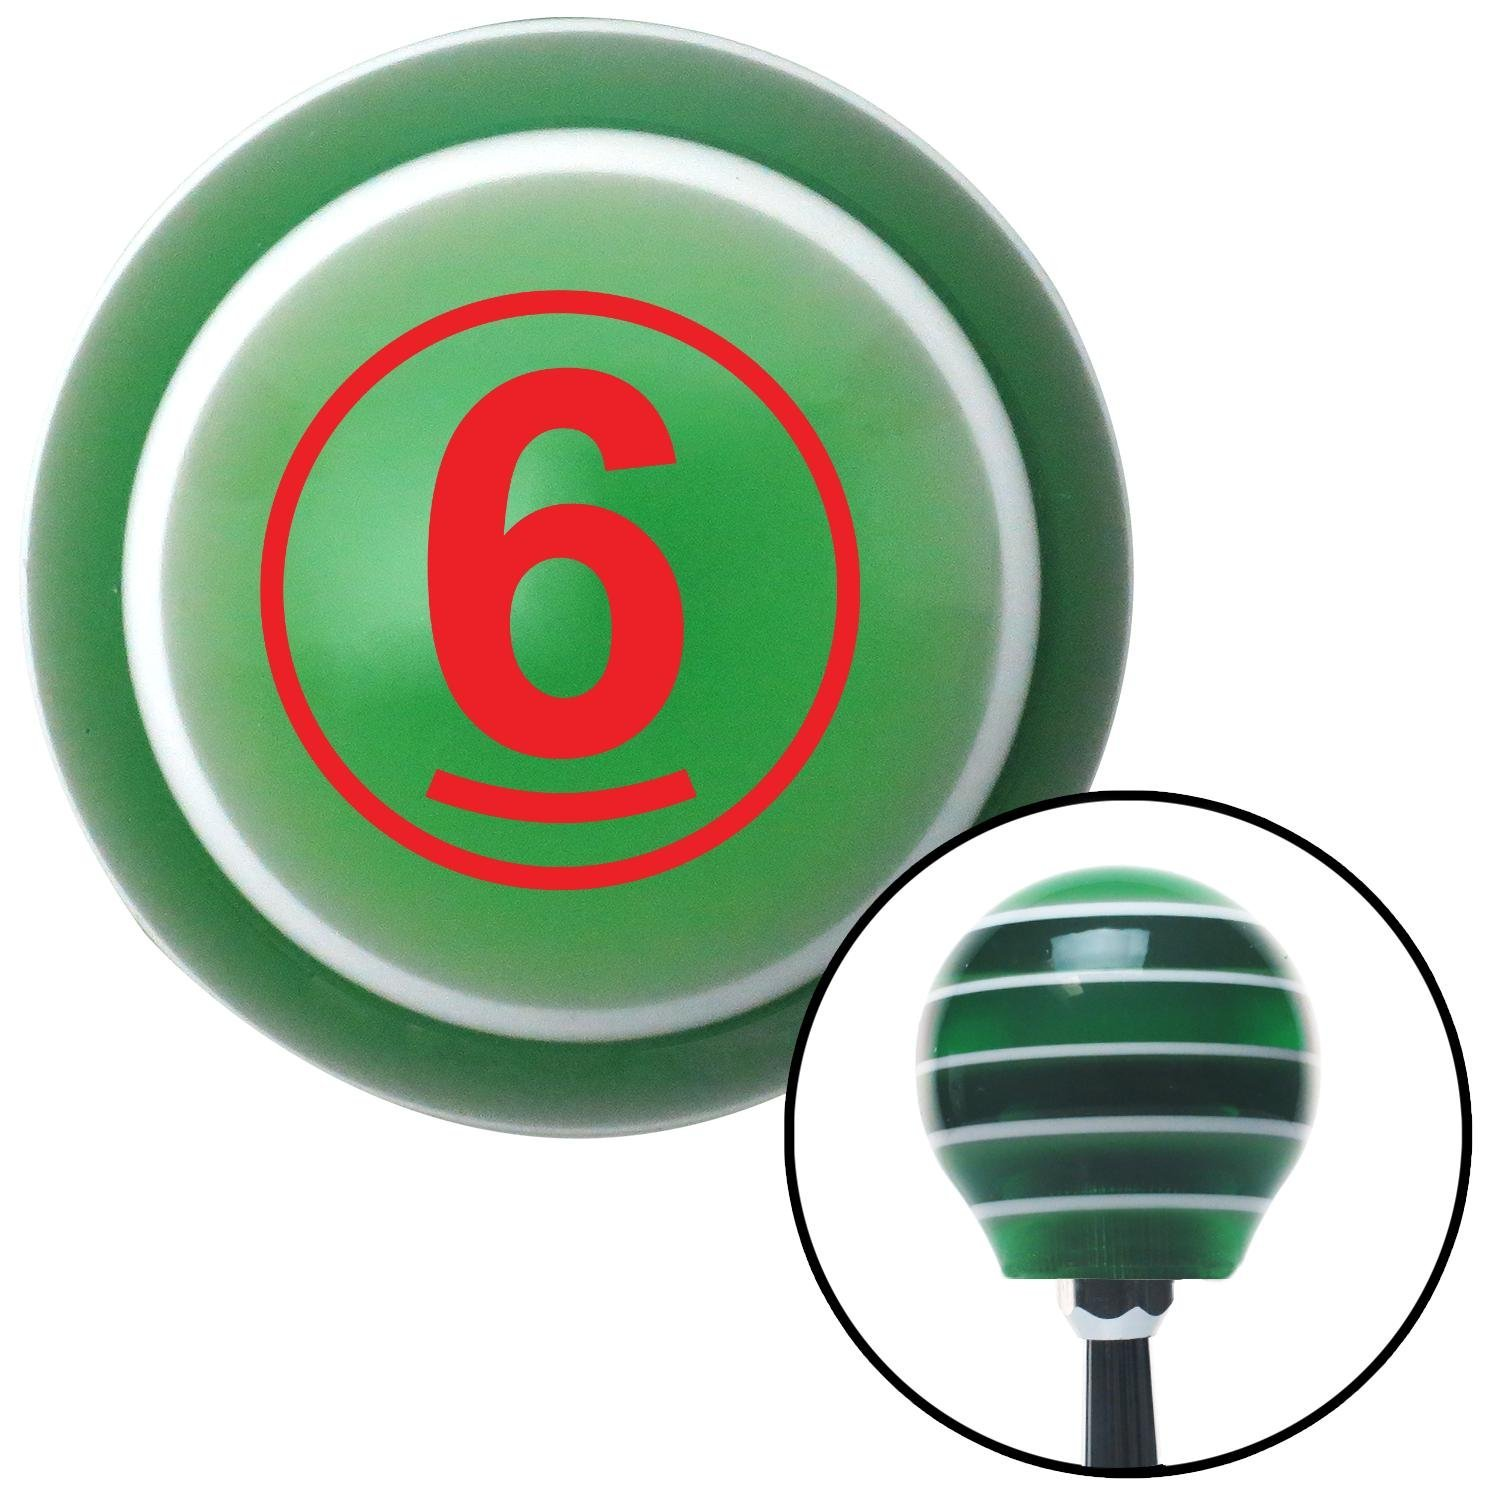 American Shifter 121702 Green Stripe Shift Knob with M16 x 1.5 Insert Red Ball #6